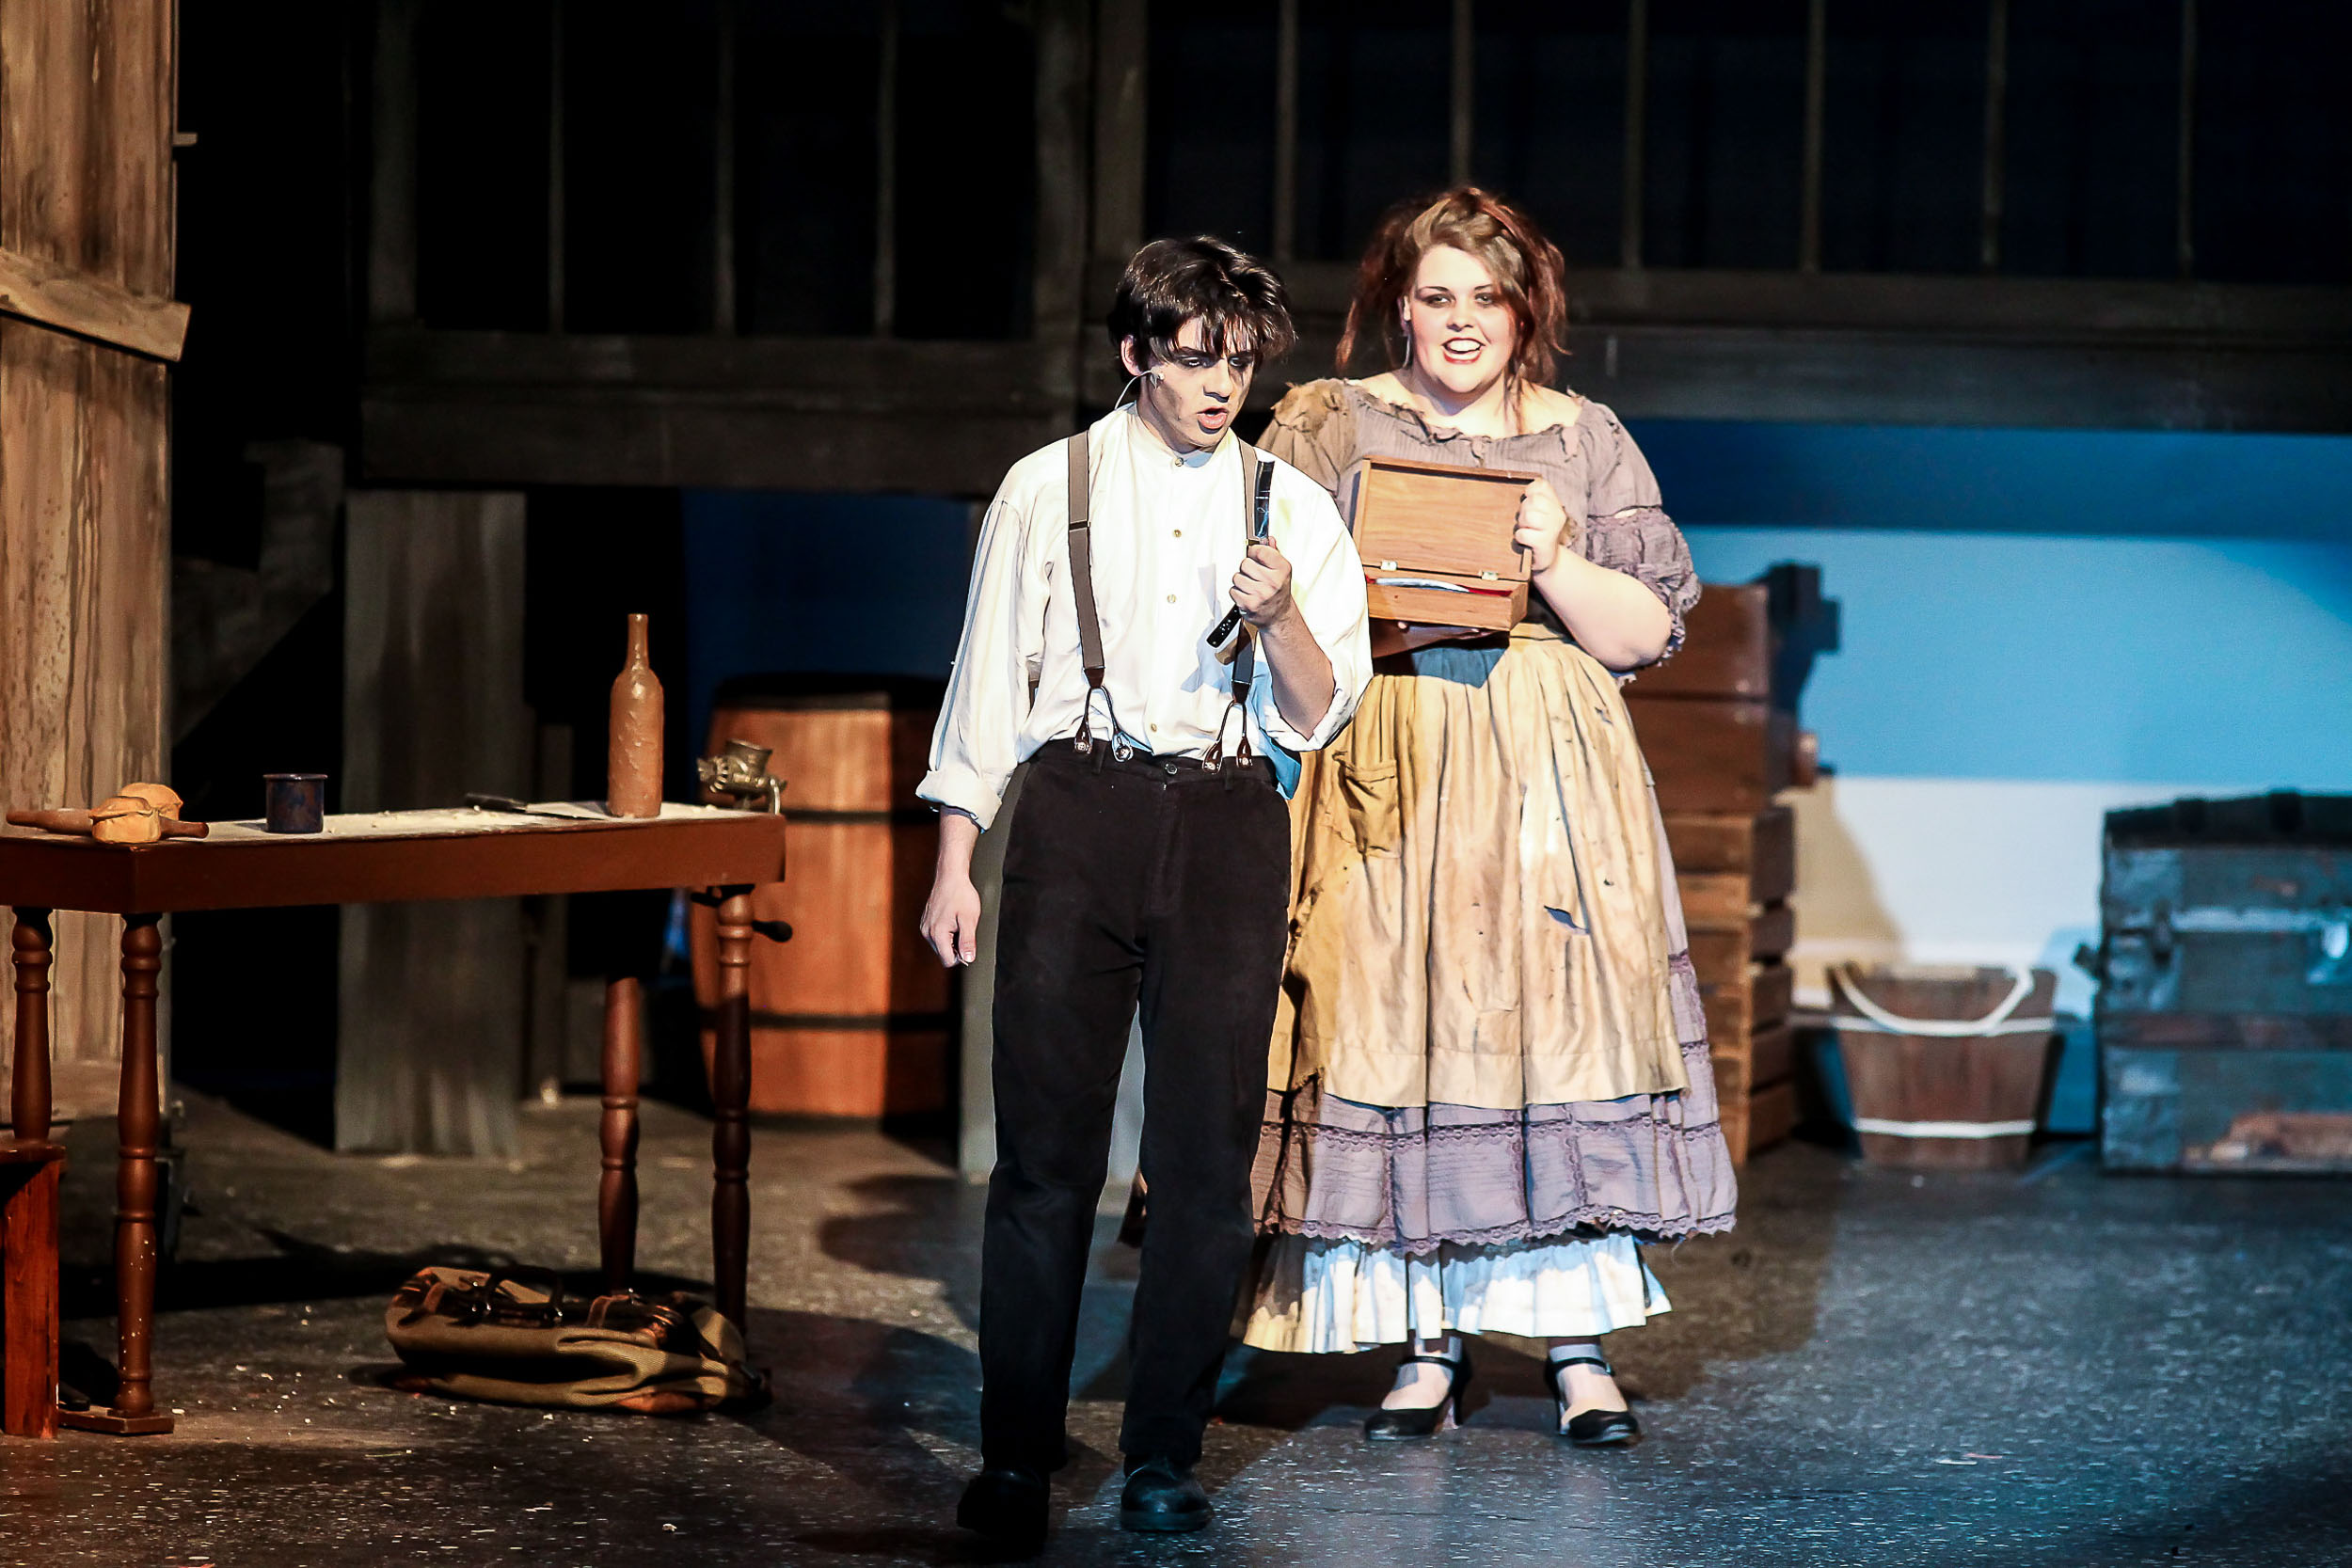 Kamiak High School - Sweeney Todd, 2013